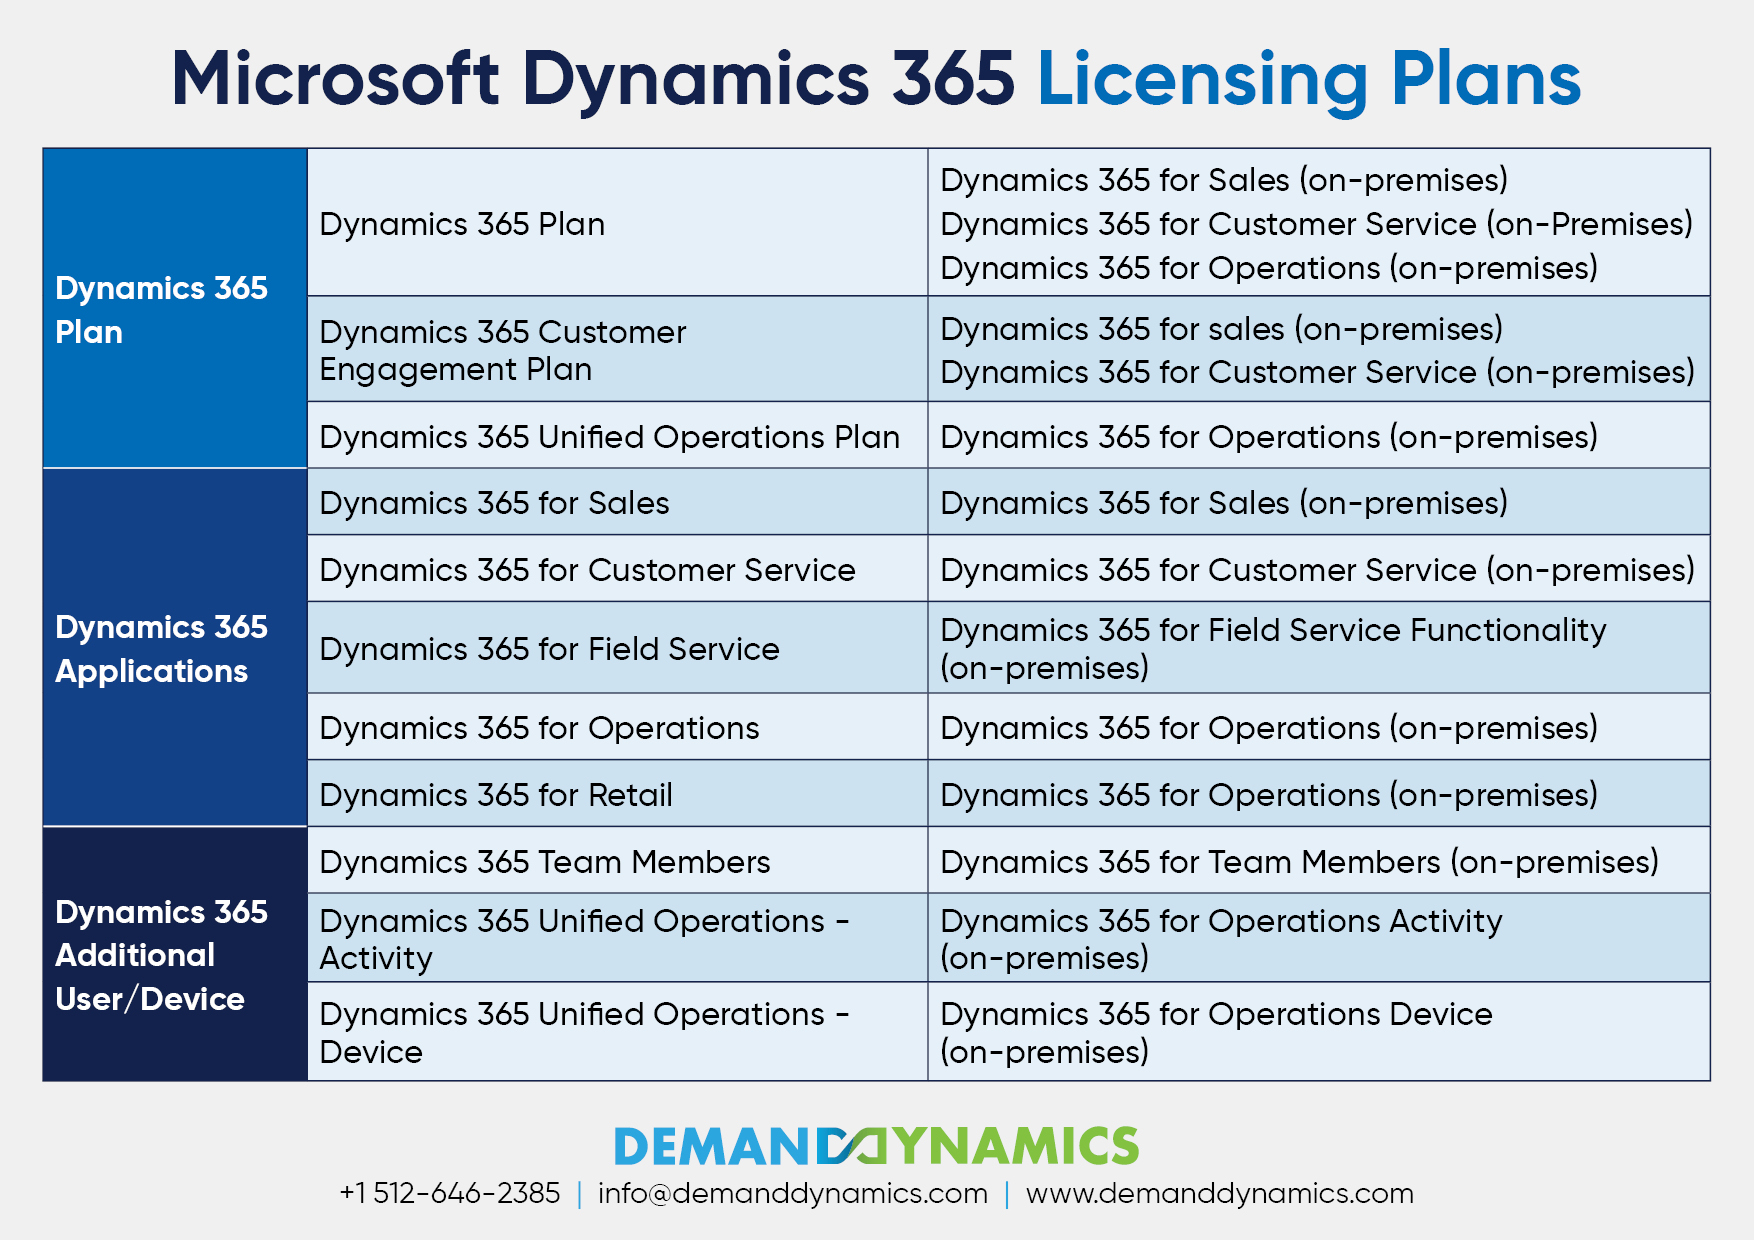 Microsoft Dynamics 365 Licensing Plans